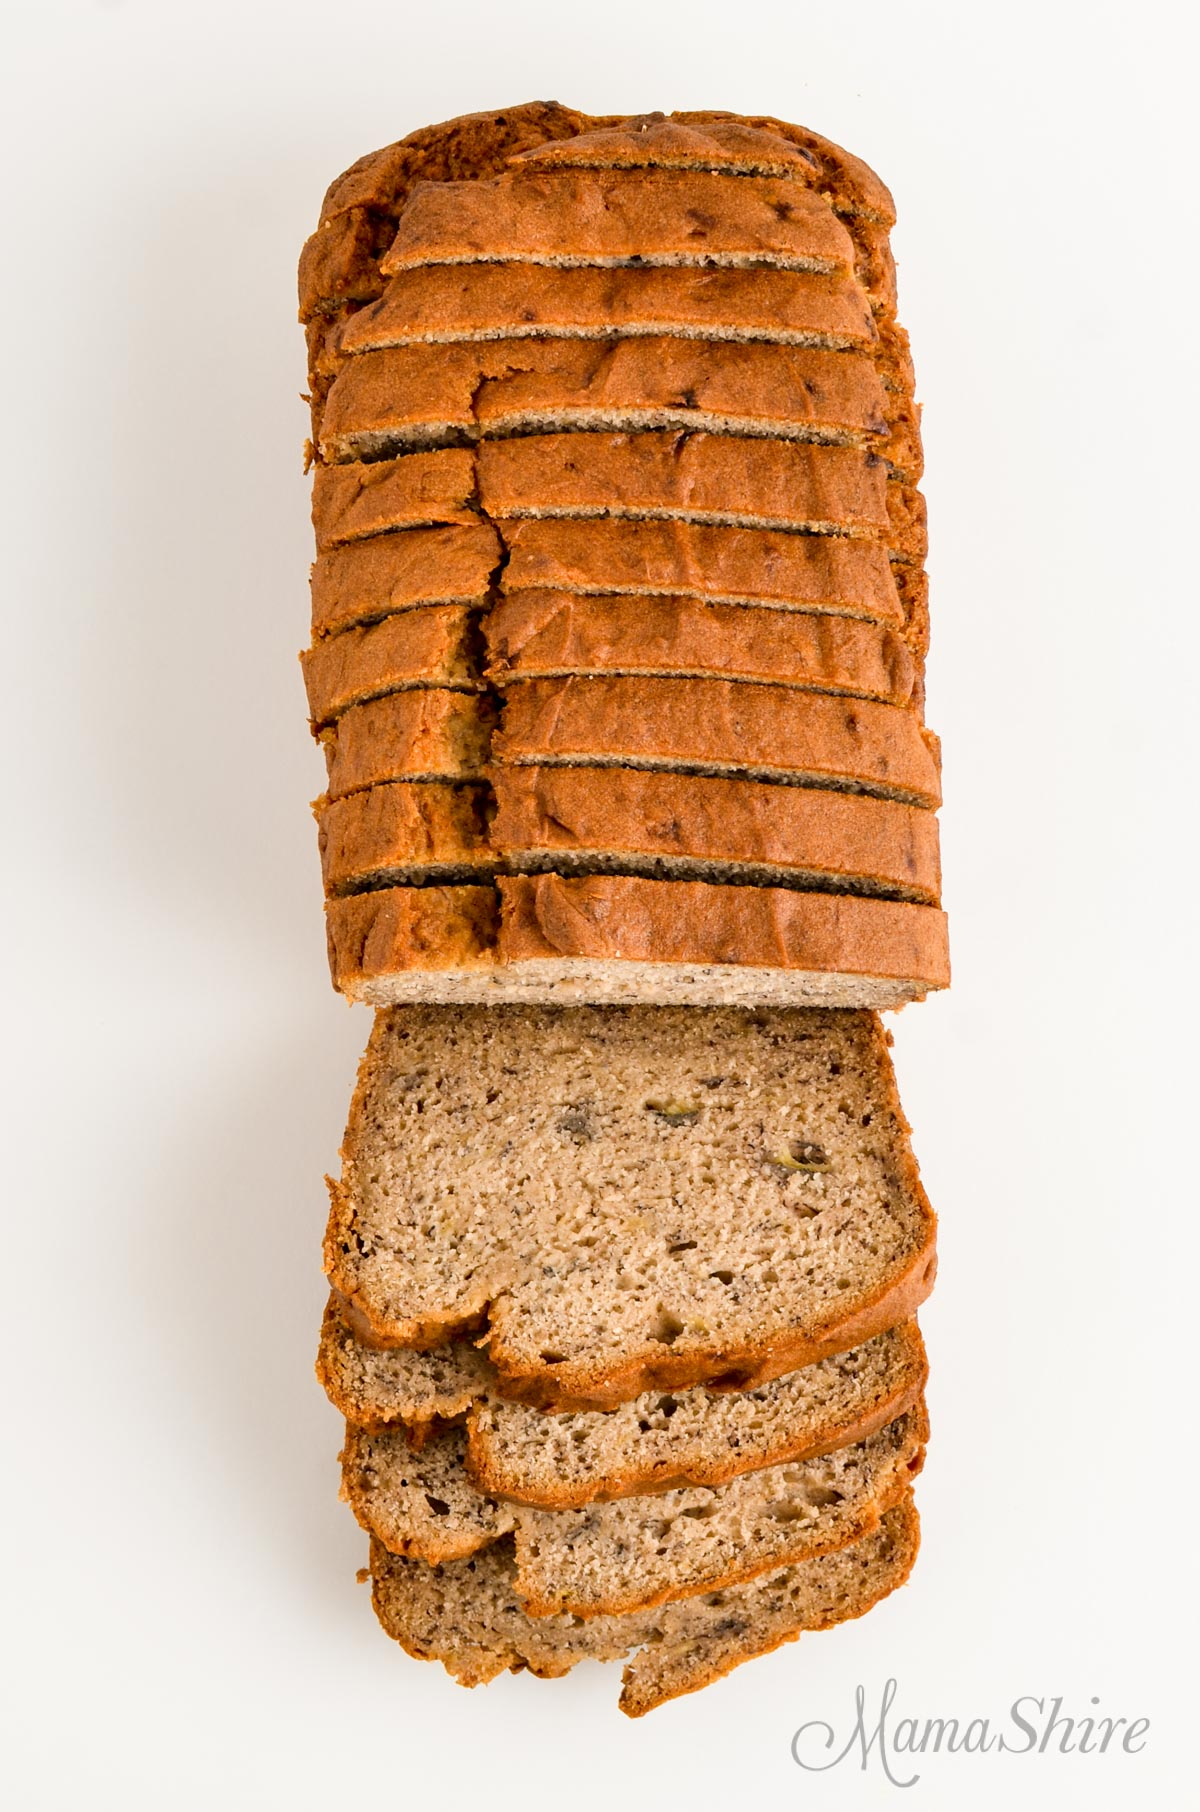 A loaf of gluten-free banana bread.